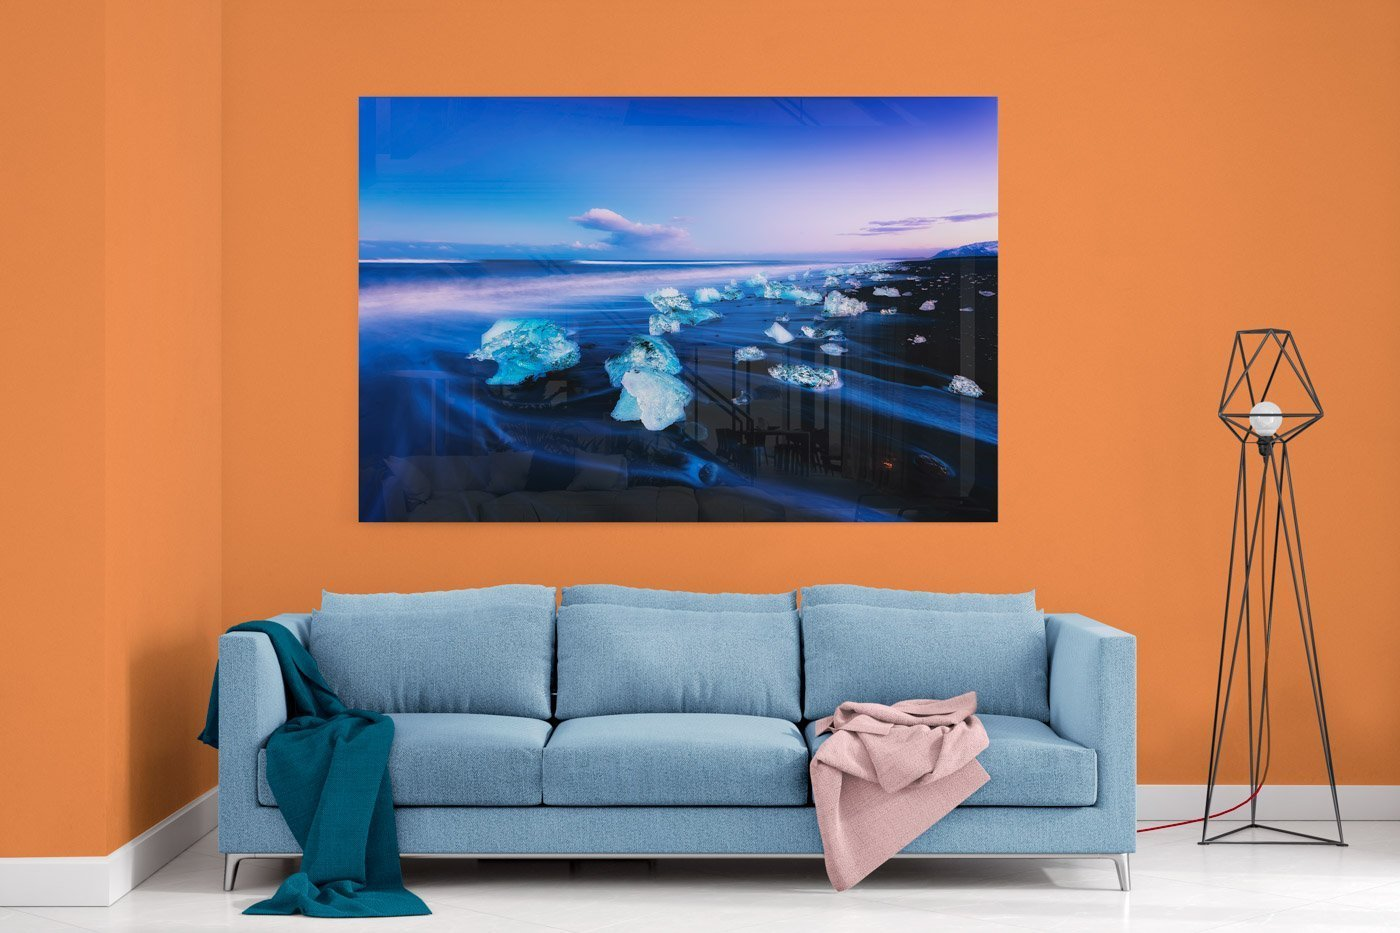 Home Decor mockup. Modern Acrylic Wall Art Image by Scott Masterton